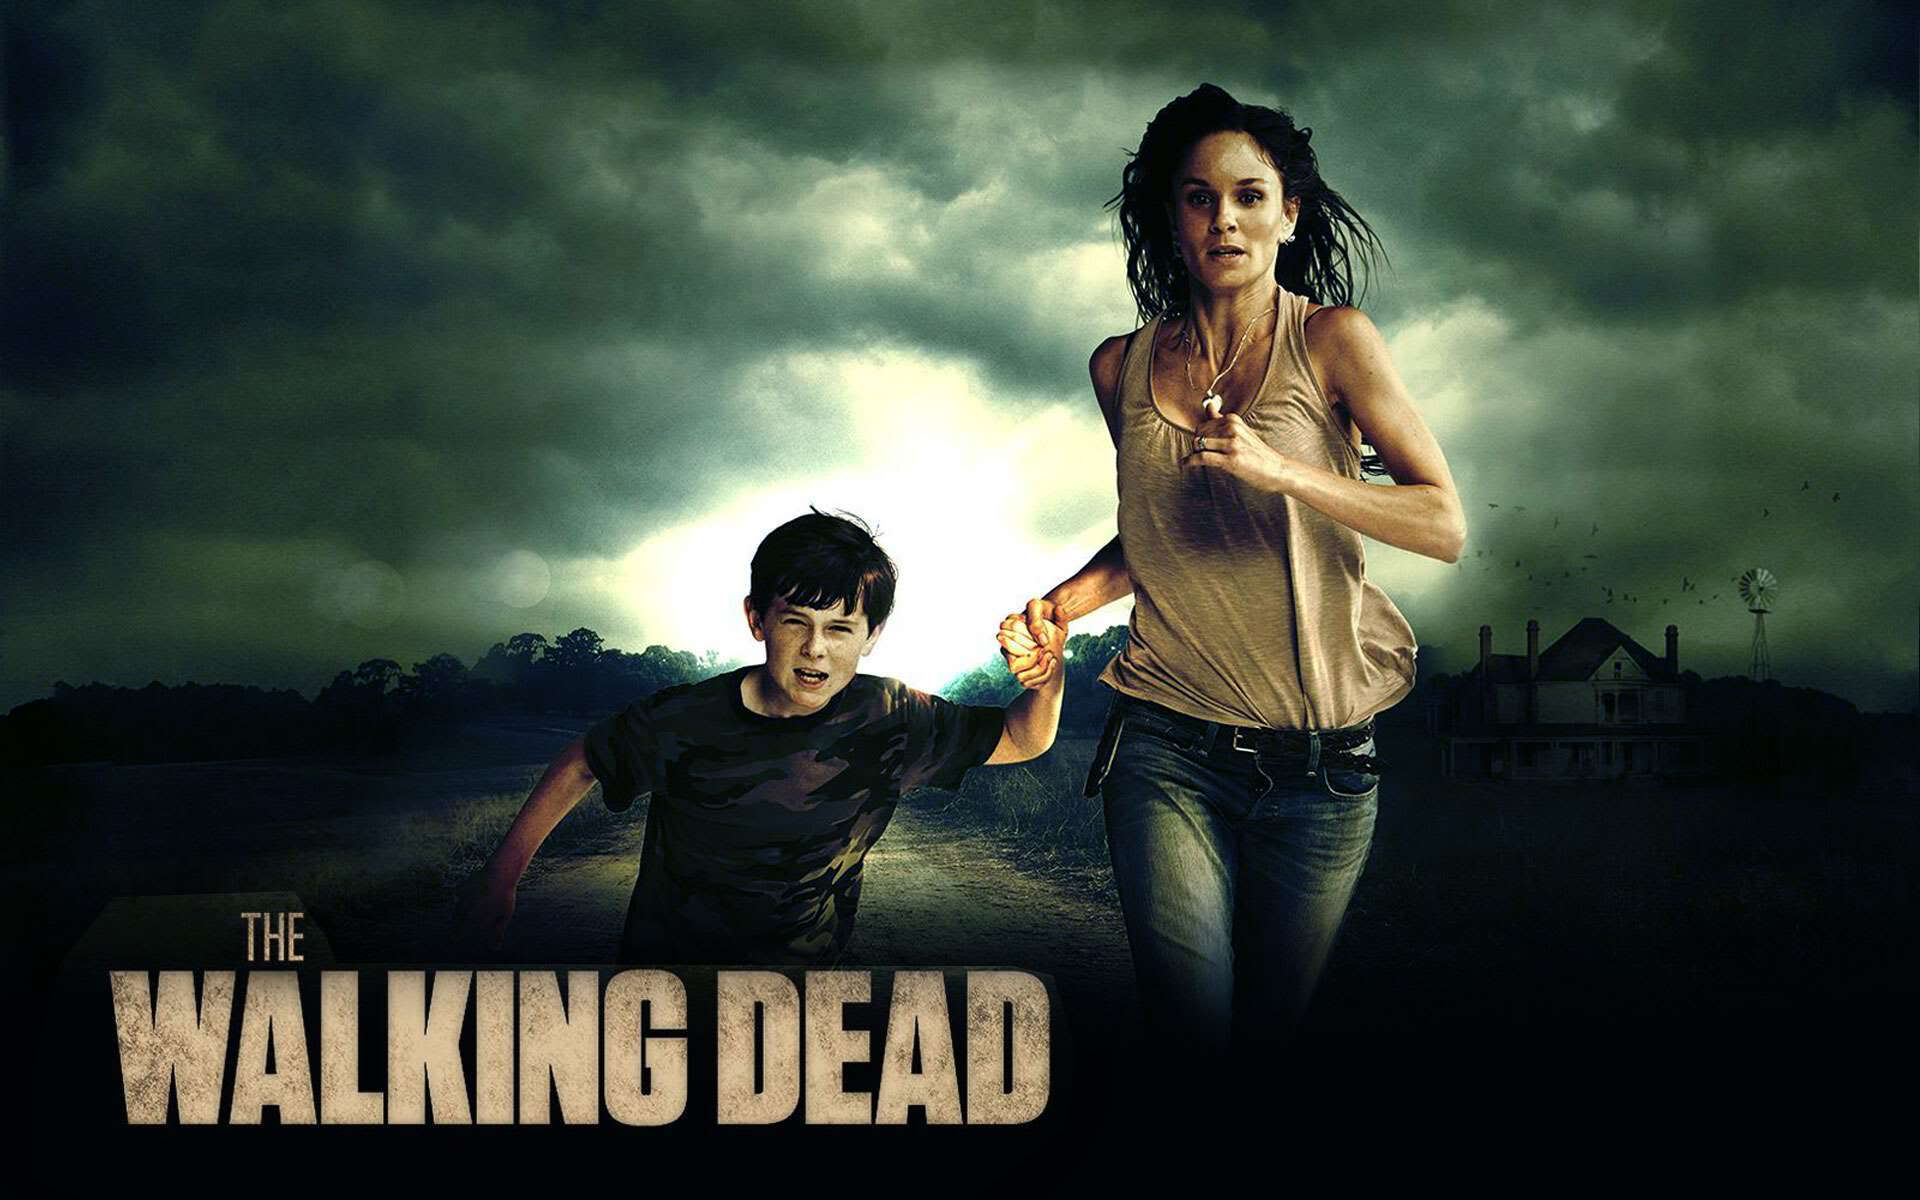 The Walking Dead Hd Wallpaper New Tab Theme Playtime